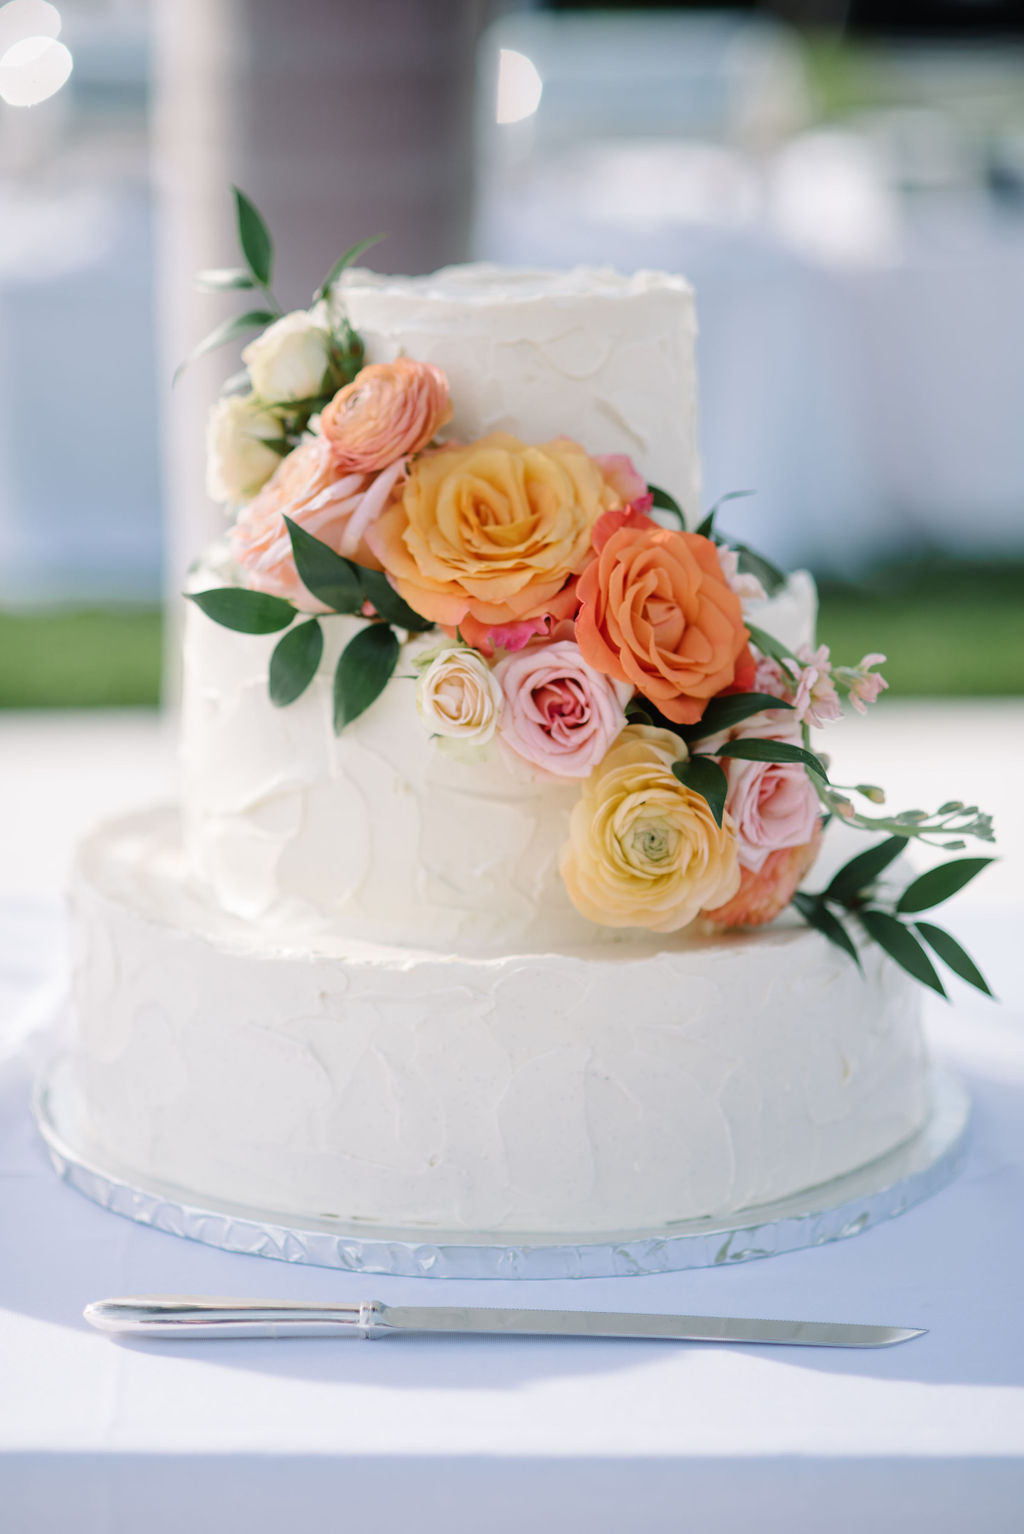 INSTAGRAM Two Tier Classic Textured Buttercream Wedding Cake with Real Blush Pink, Orange and Ivory Roses Cascading | Tampa Bay Wedding Florist Bruce Wayne Florals